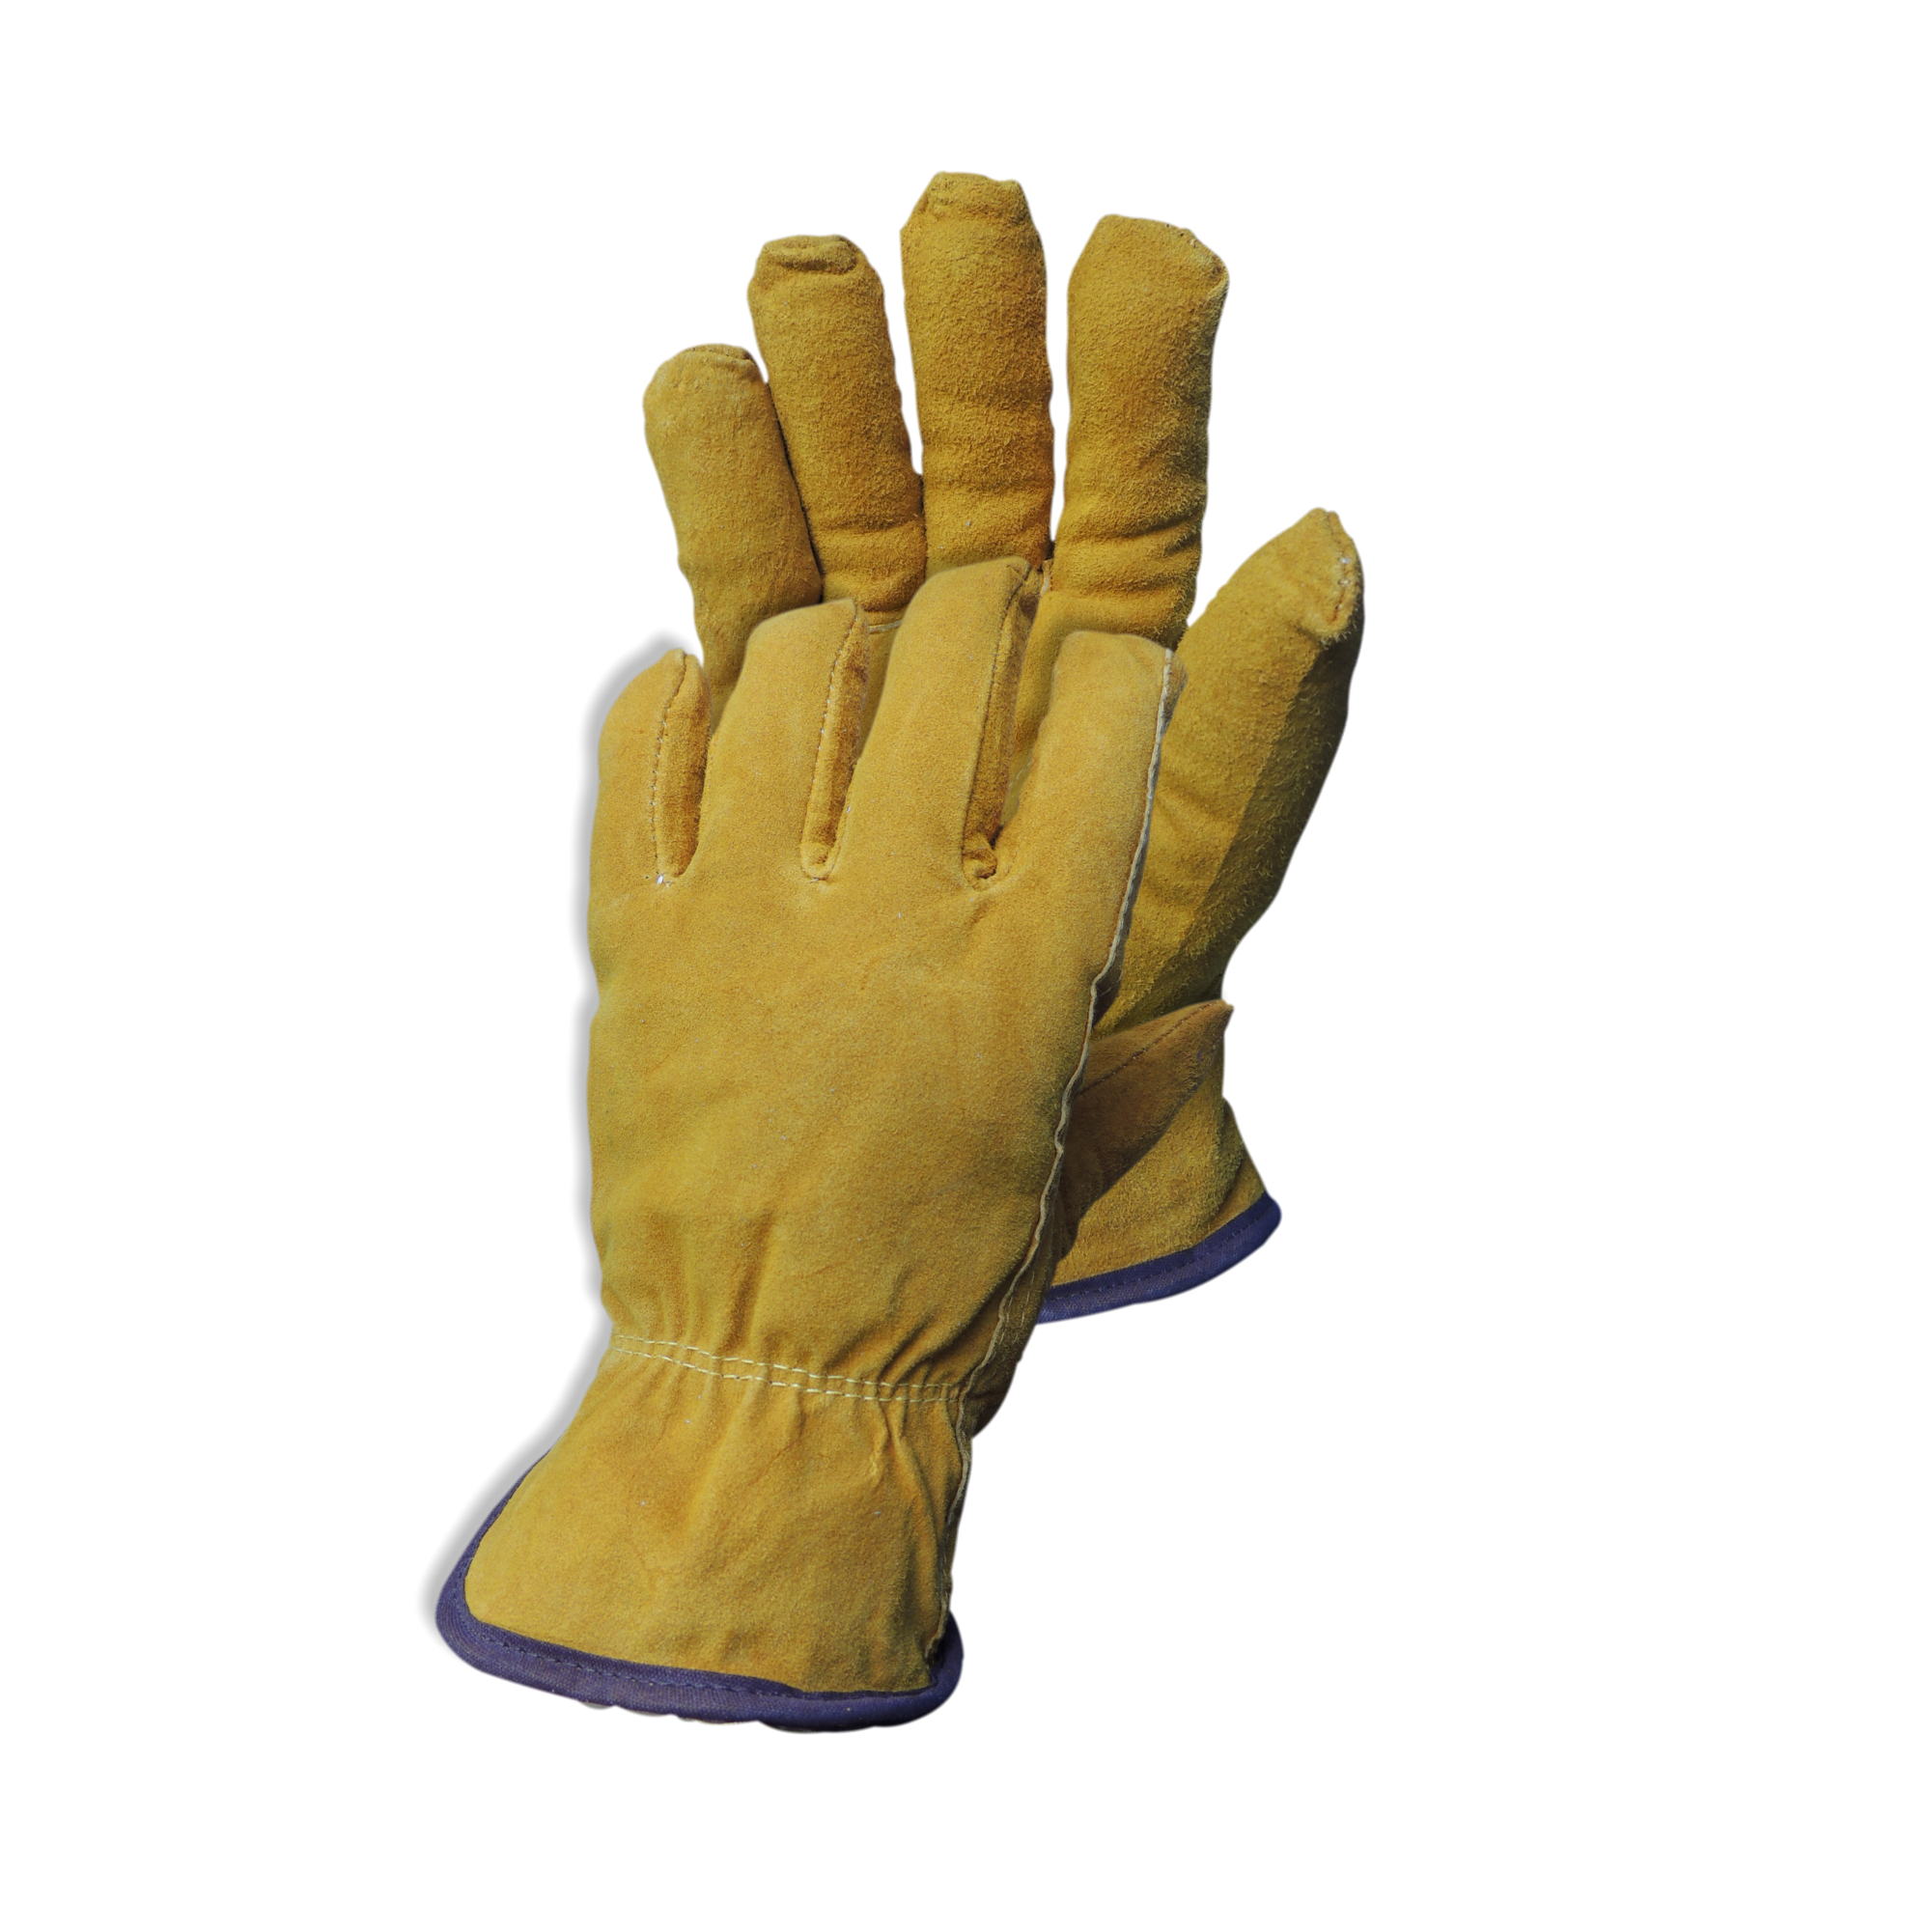 Cold Room Glove